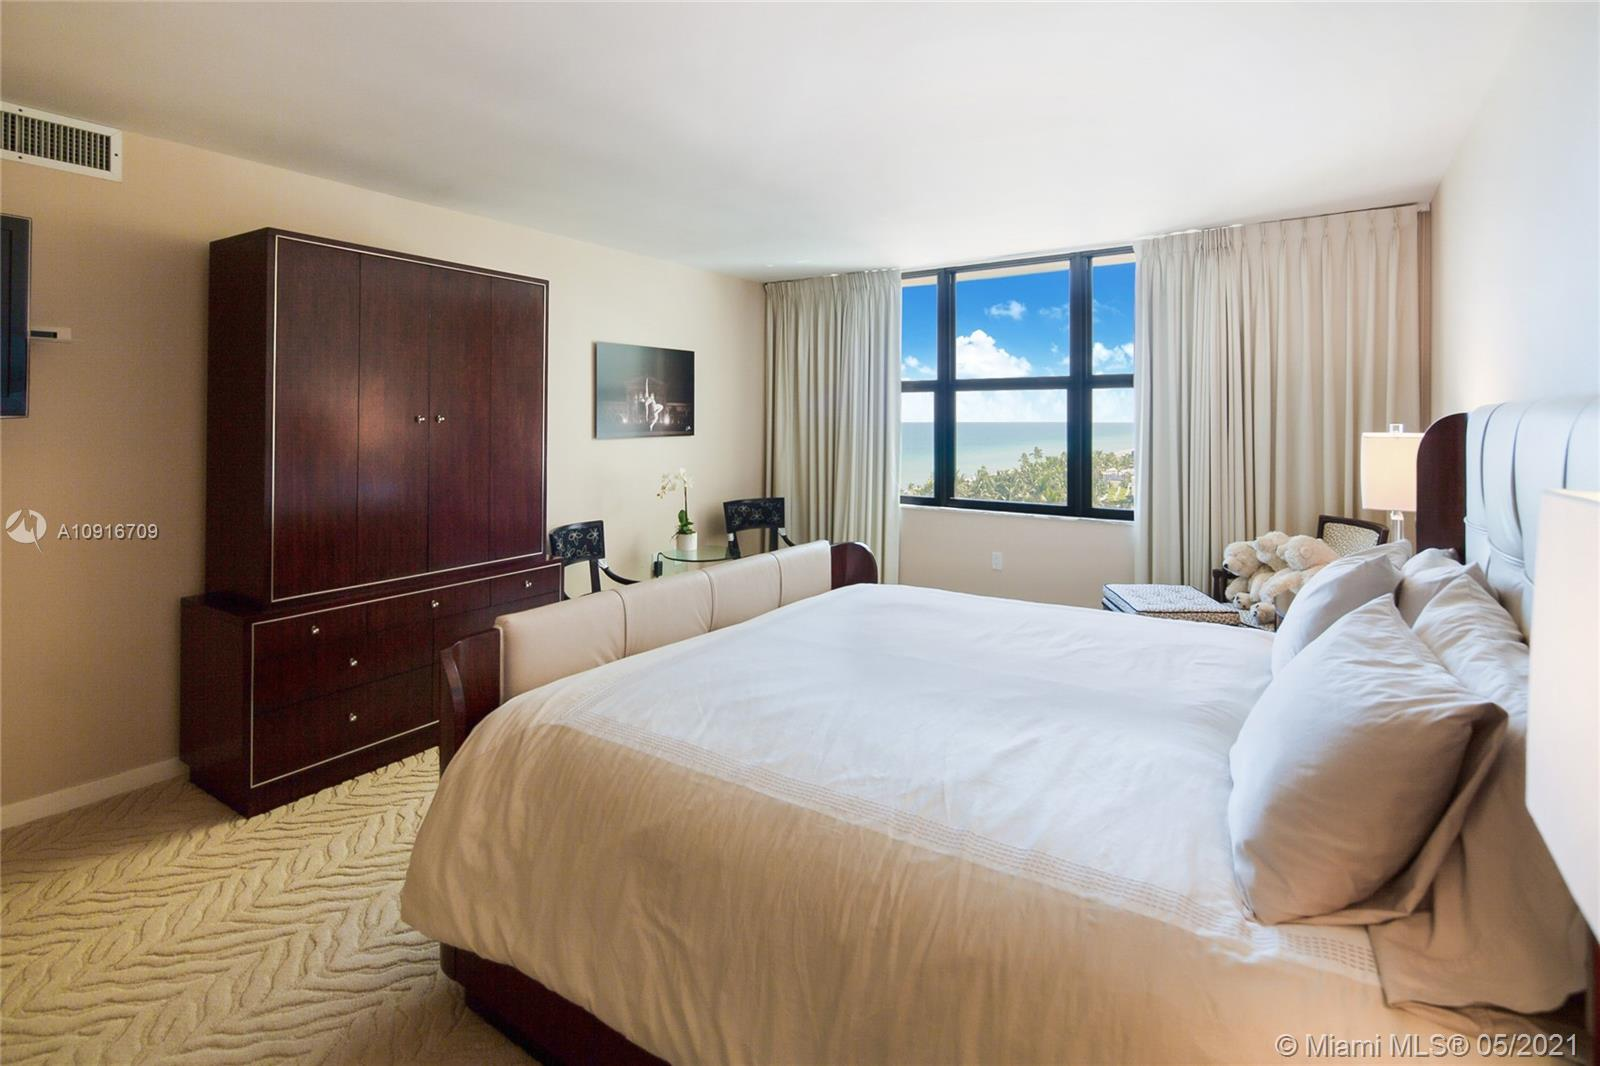 Photo of 9801 Collins Ave #11B Direct Ocean, Bal Harbour, Florida, 33154 - From the dinning room looking the entrance door